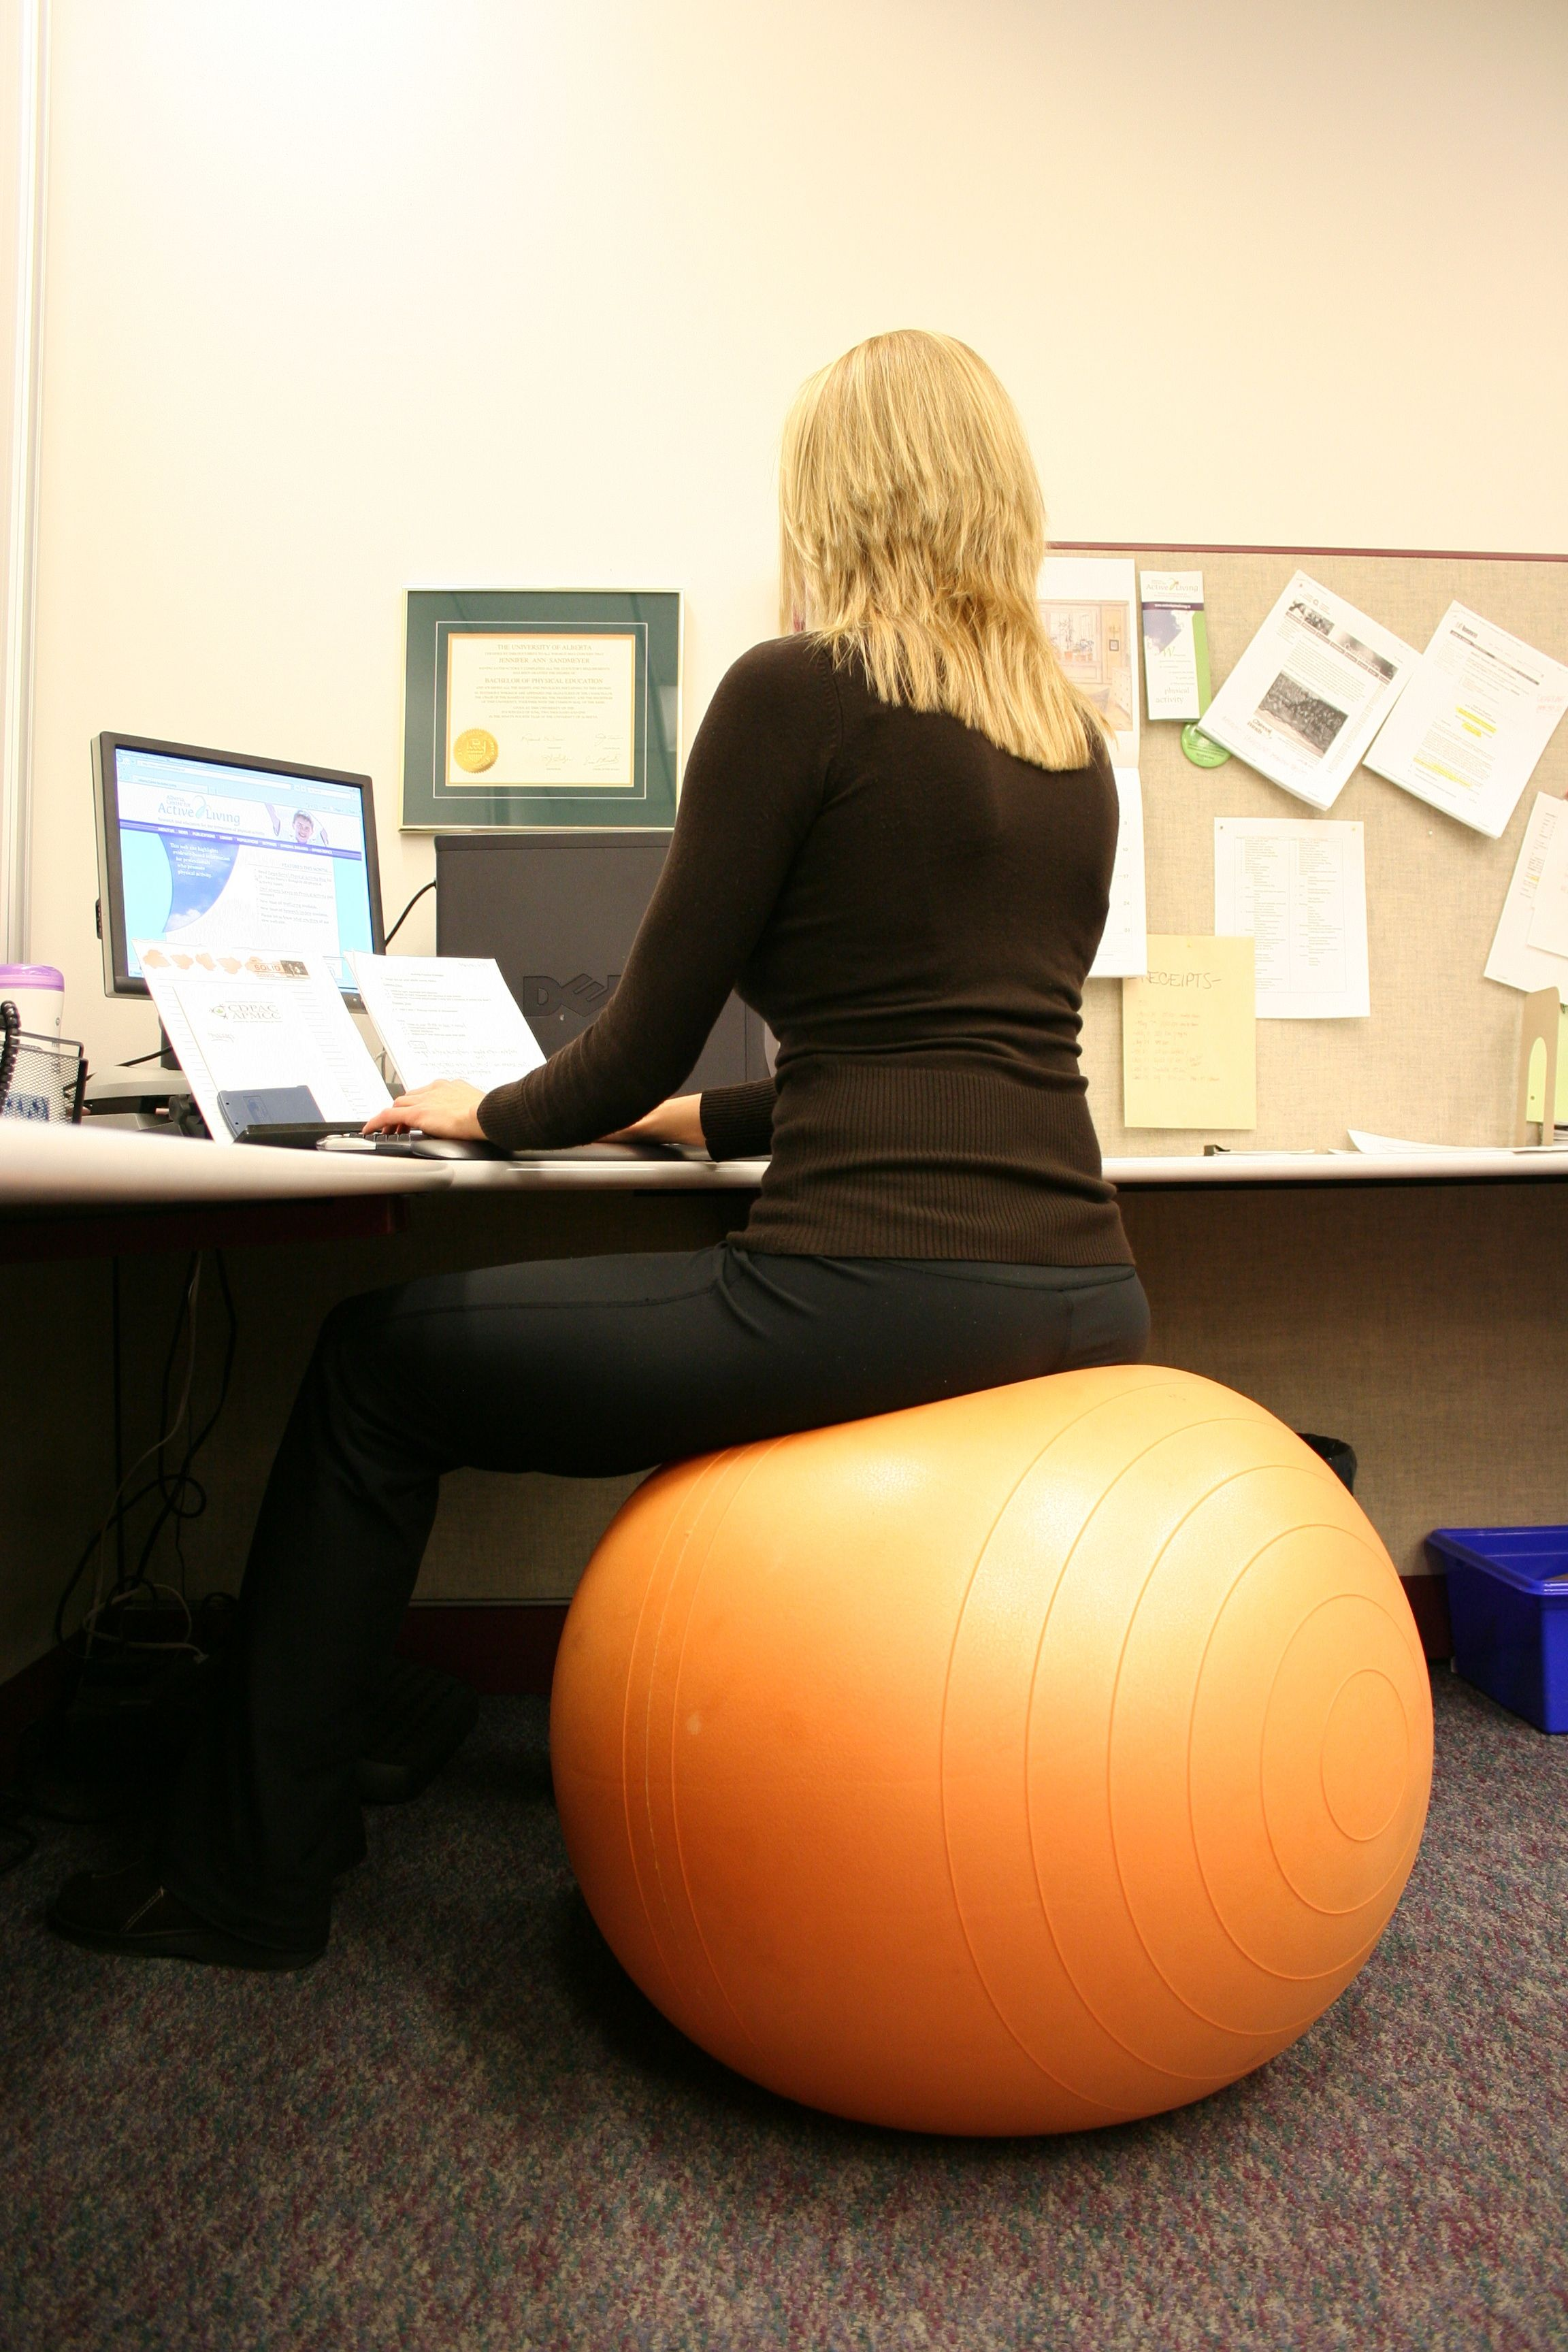 I have been sitting on an exercise ball in place of an